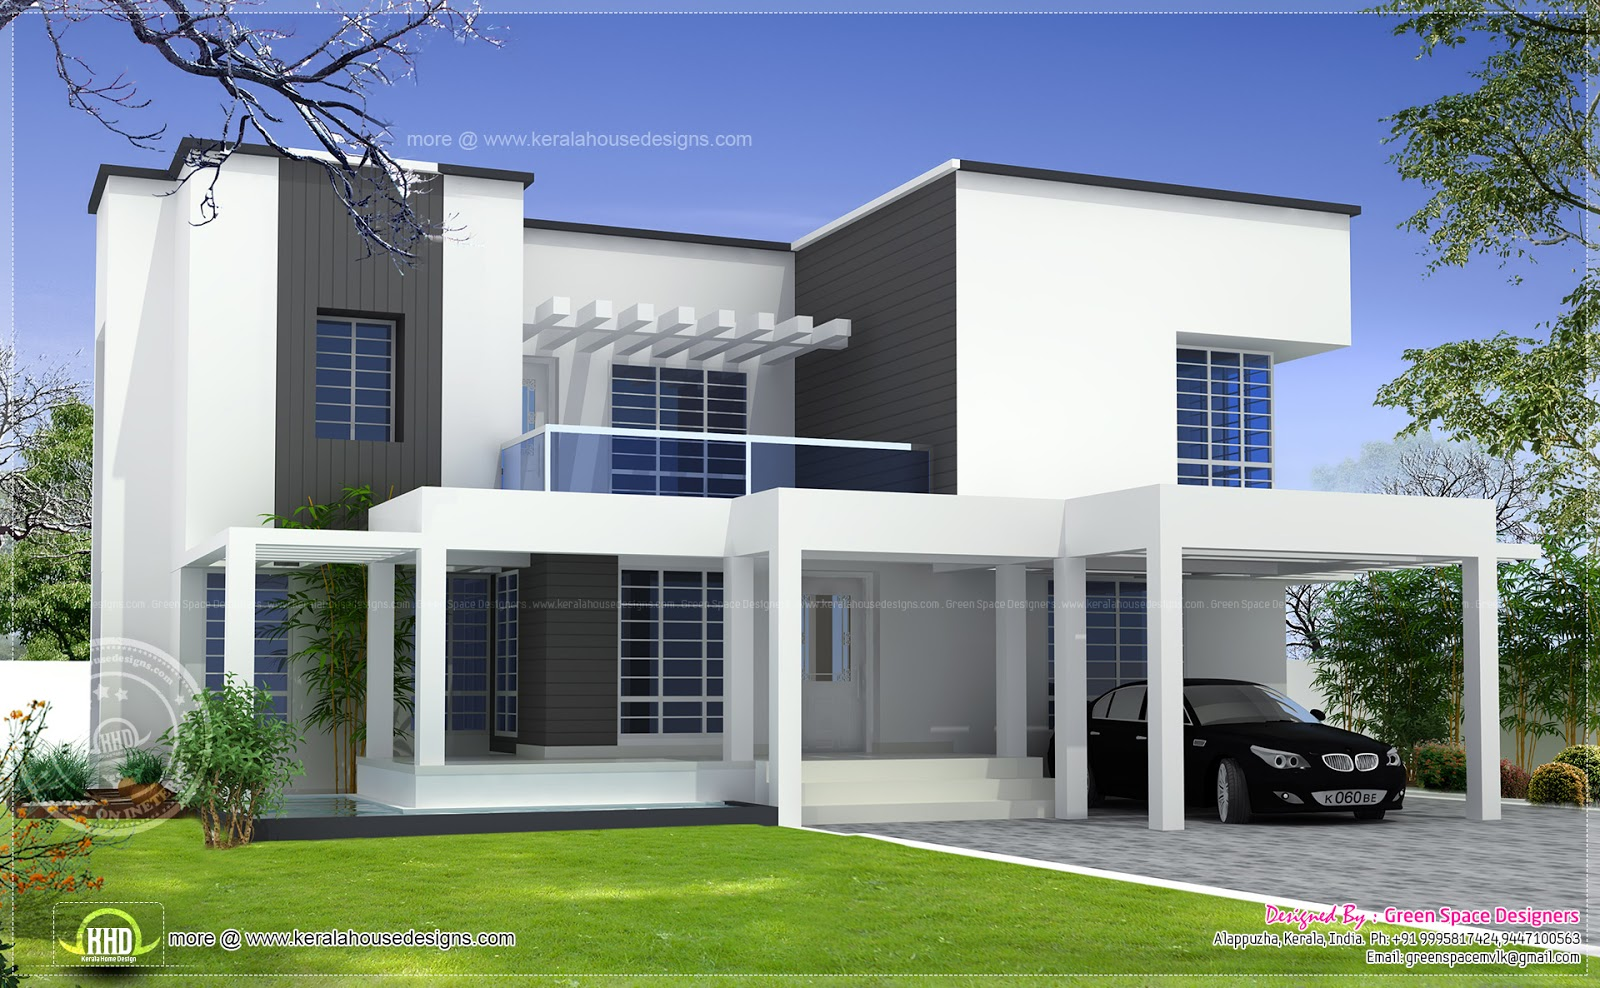 Captivating Modern Vastu Home Design. Facilities In This House